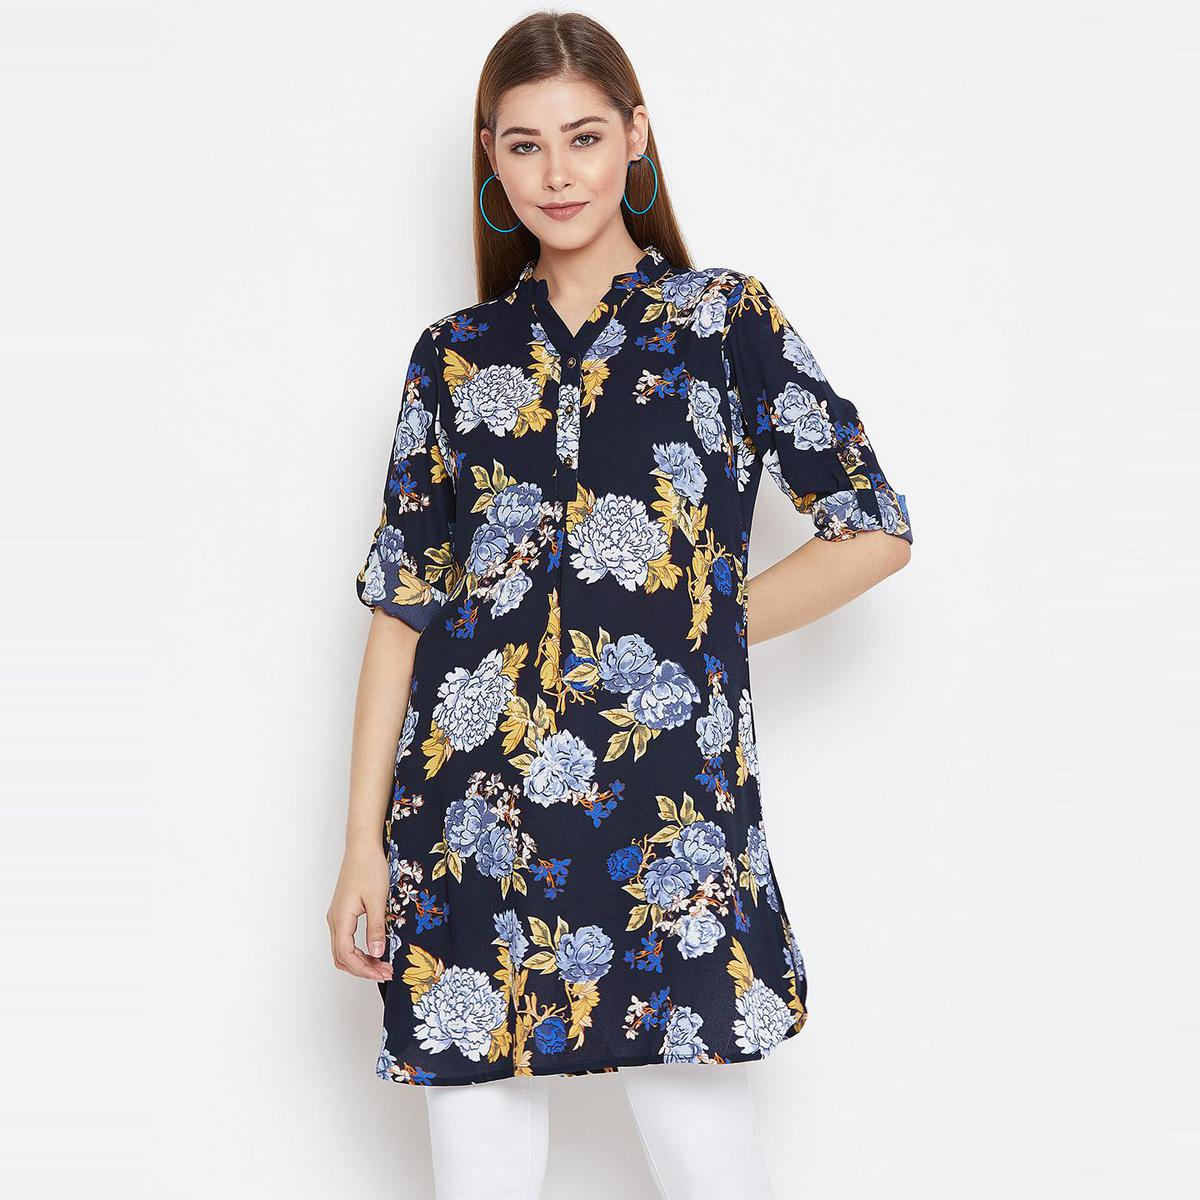 Aarudi Fashion - Women's Navy Blue Colored Floral Printed Crepe Tunic